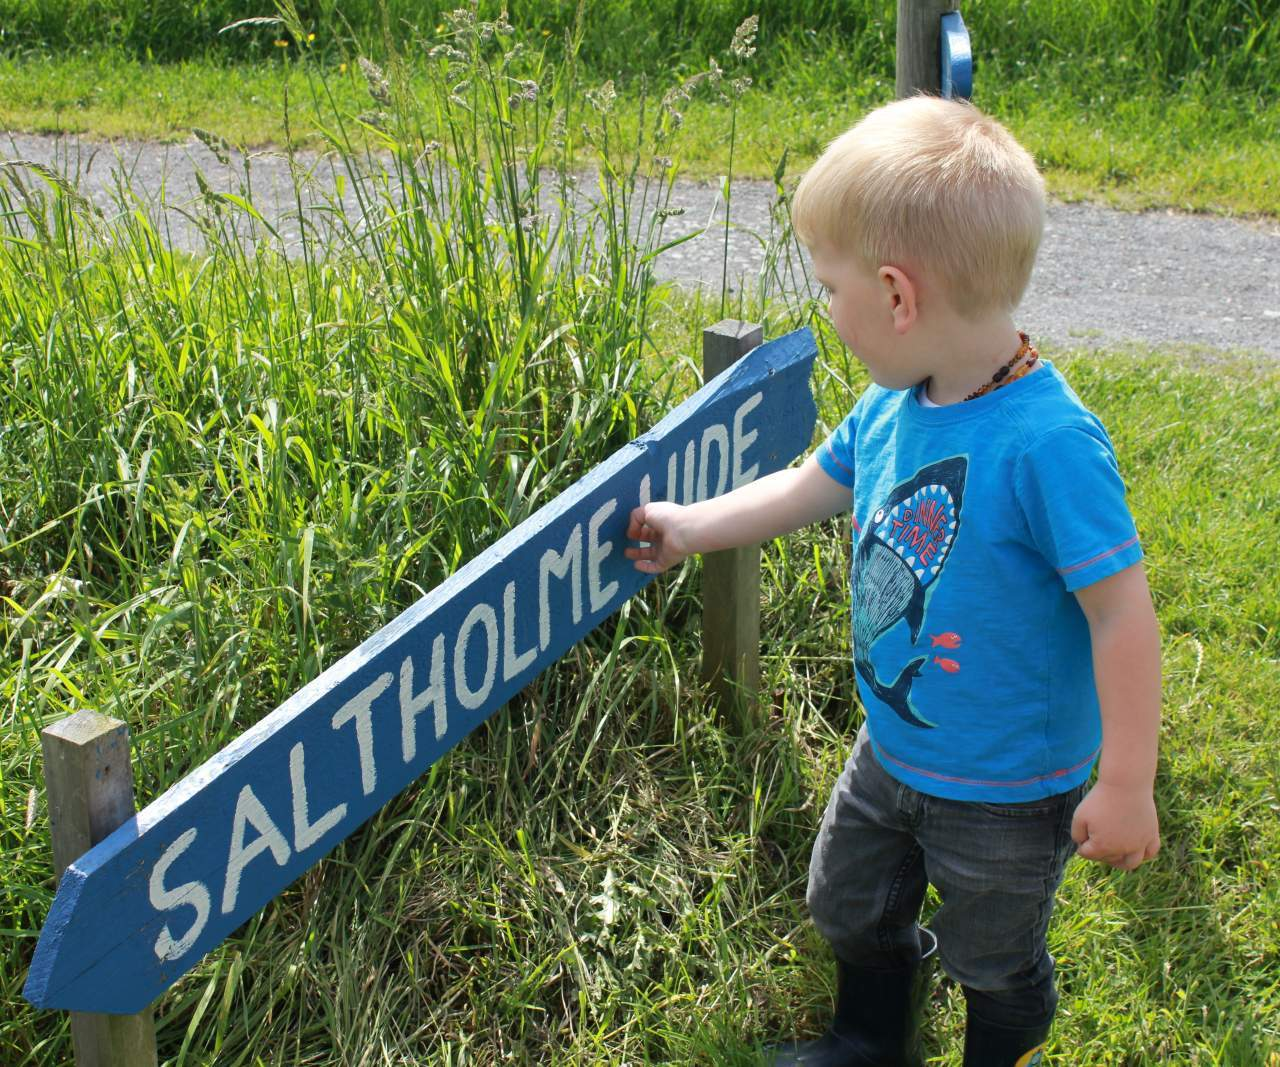 A full day out at RSPB Saltholme